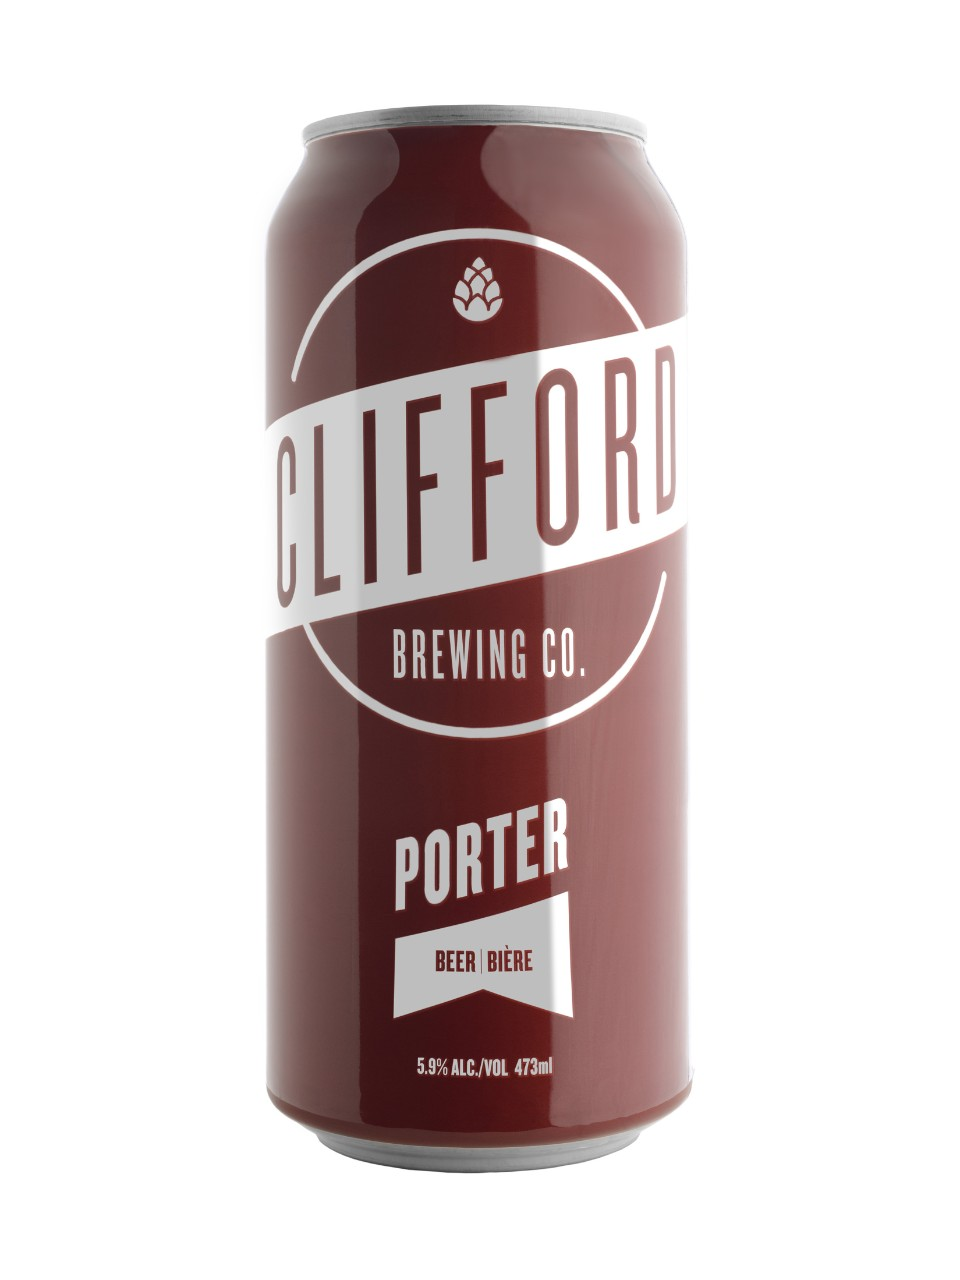 Clifford Brewing Company's Porter is their flagship beer and is great with hearty meat dishes and best served on cool days, and nights. Click through for the full review.